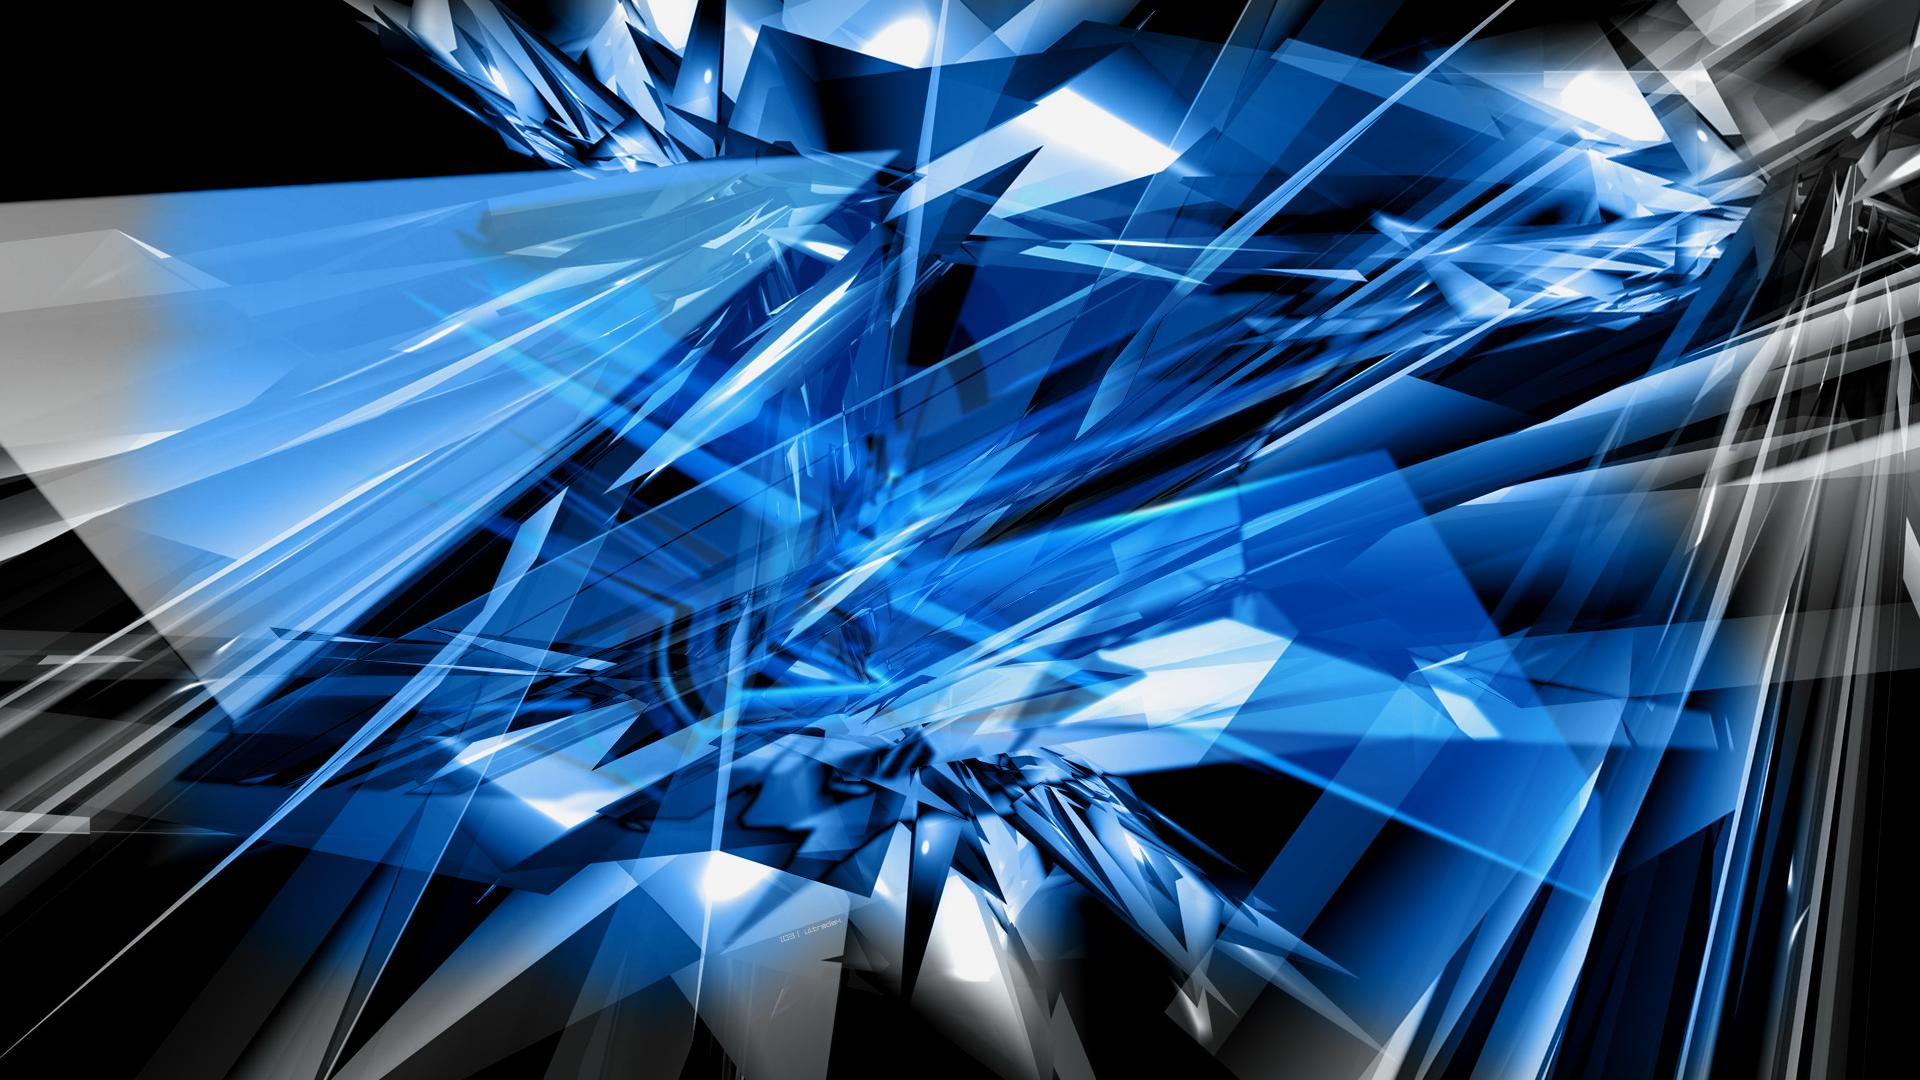 3d Abstract Desktop Wallpapers Top Free 3d Abstract